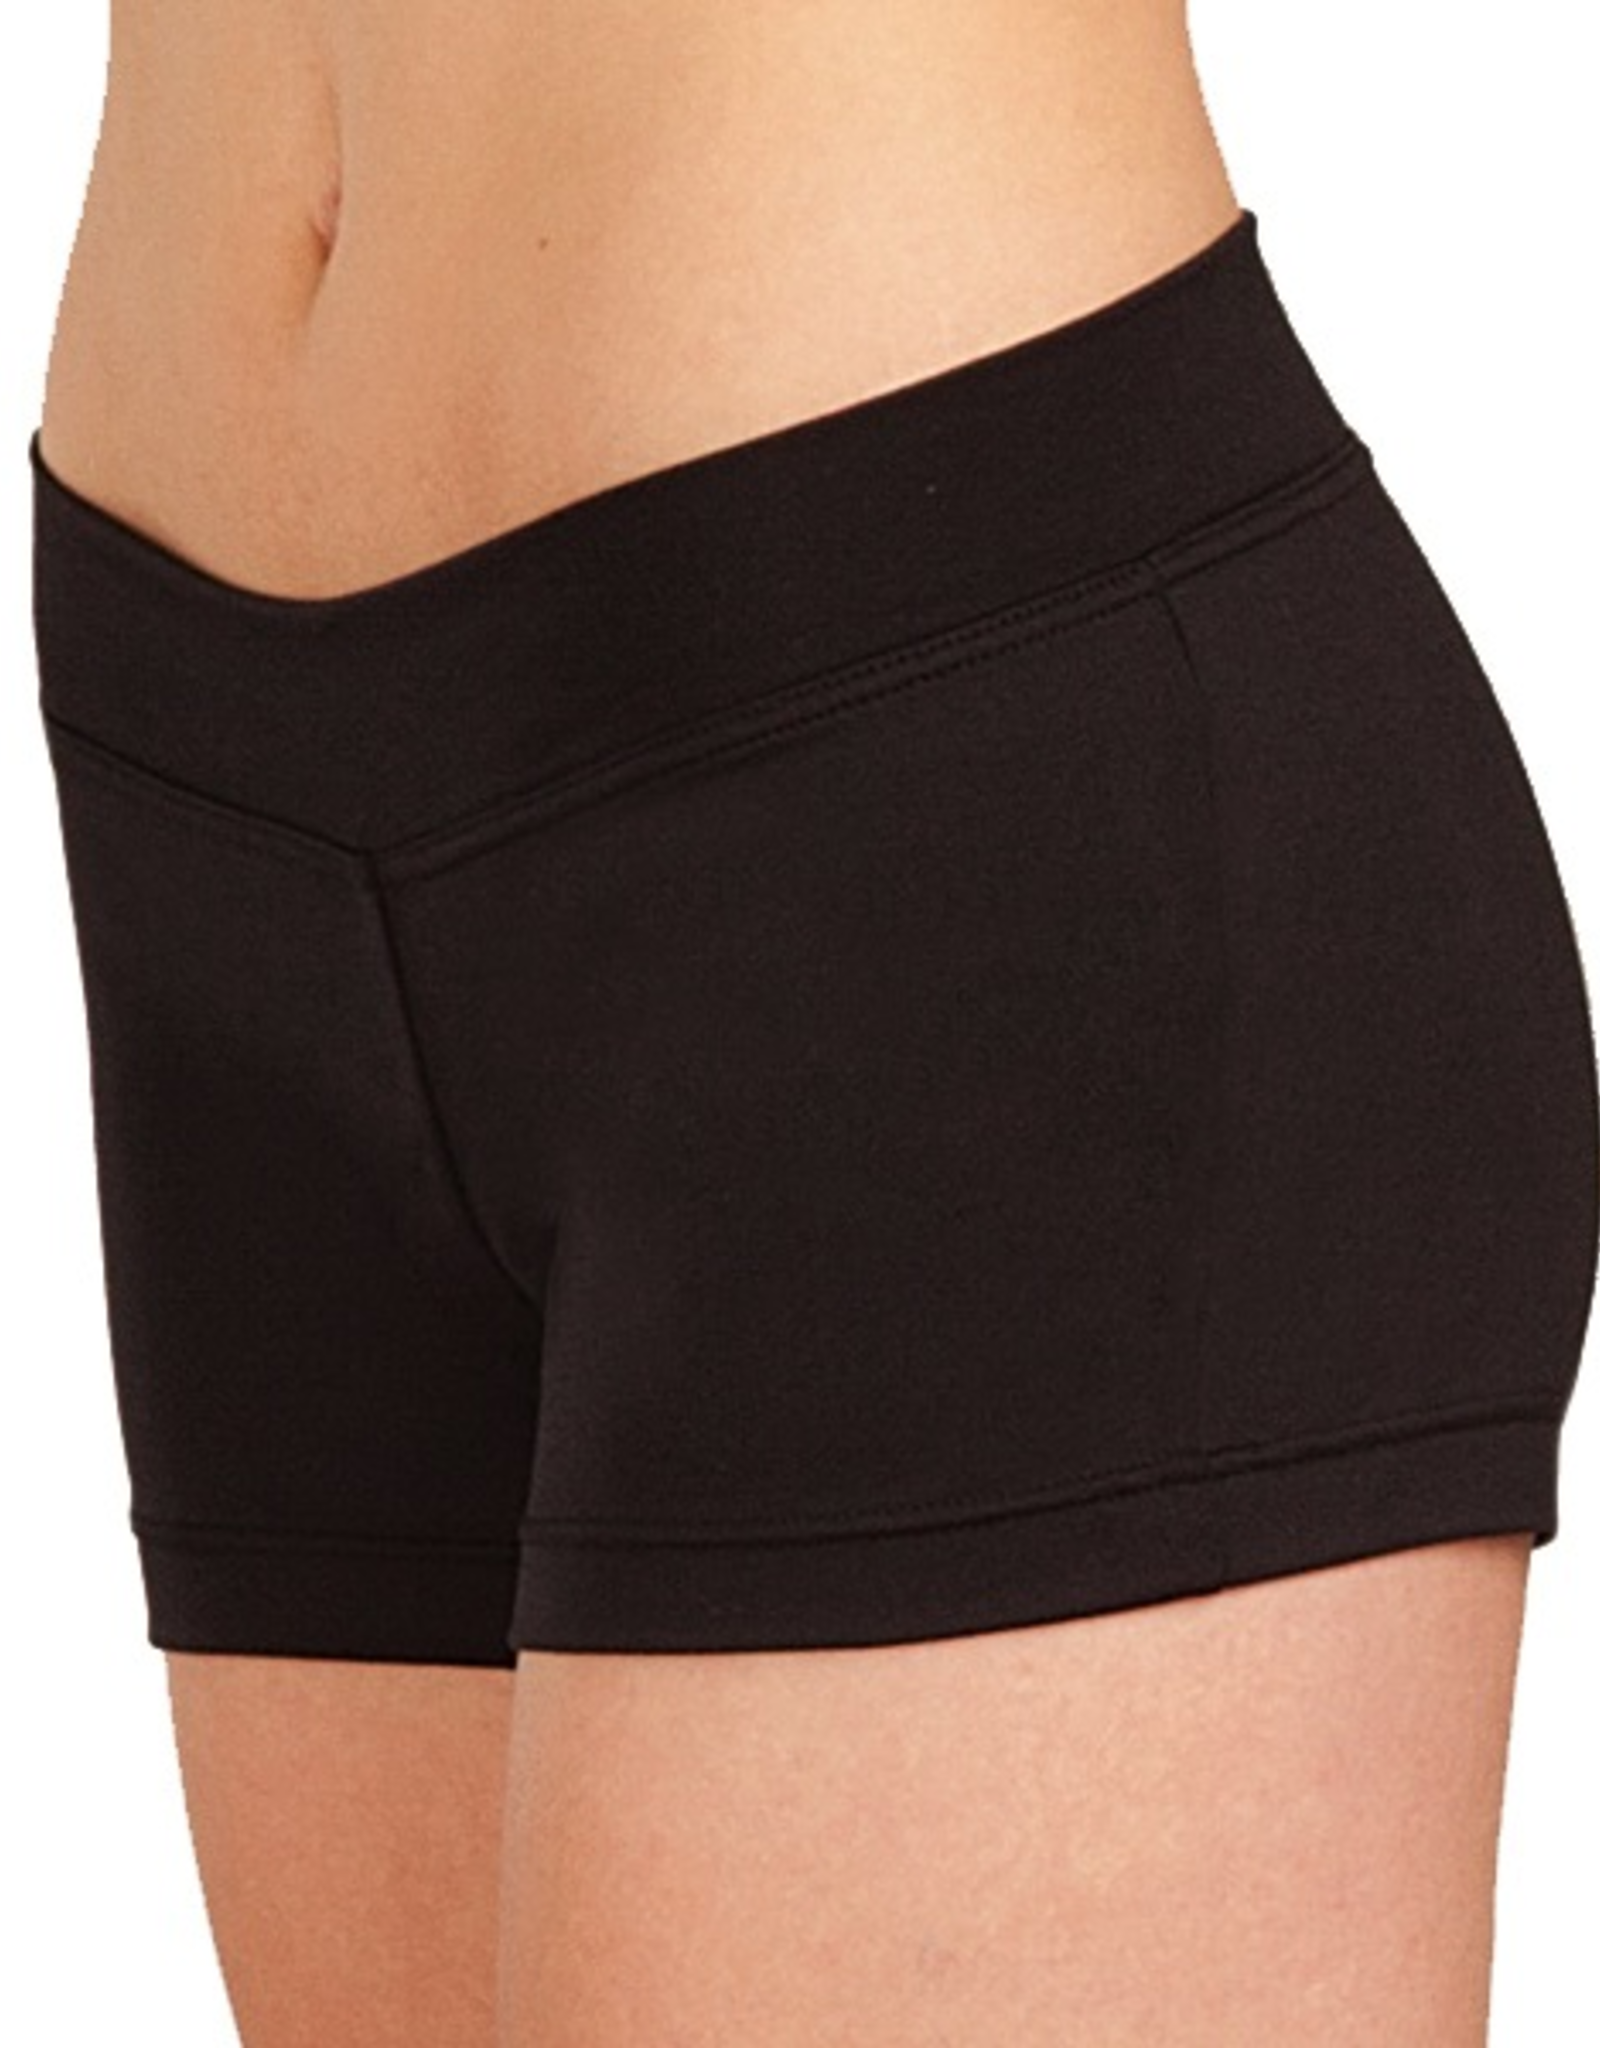 Capezio BX600 Dance Shorts Adult